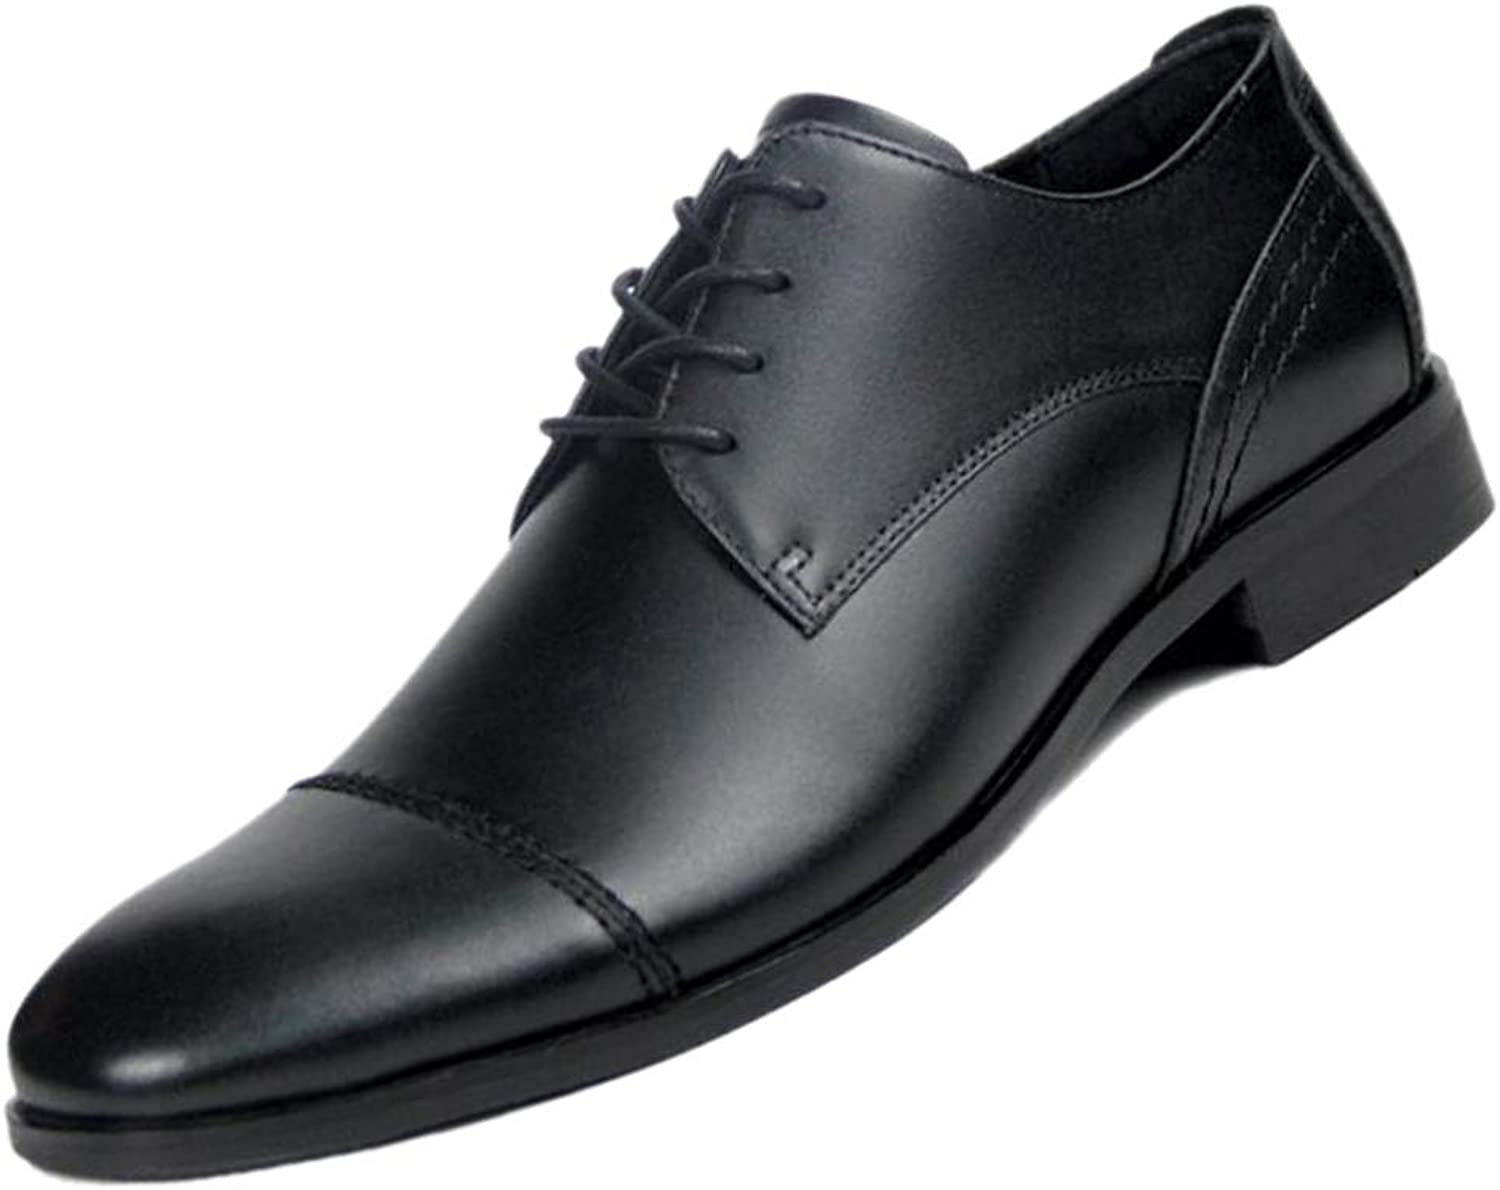 Black Derby Pointed Business Men's Leather shoes Soft Leather Gentleman England Wedding shoes